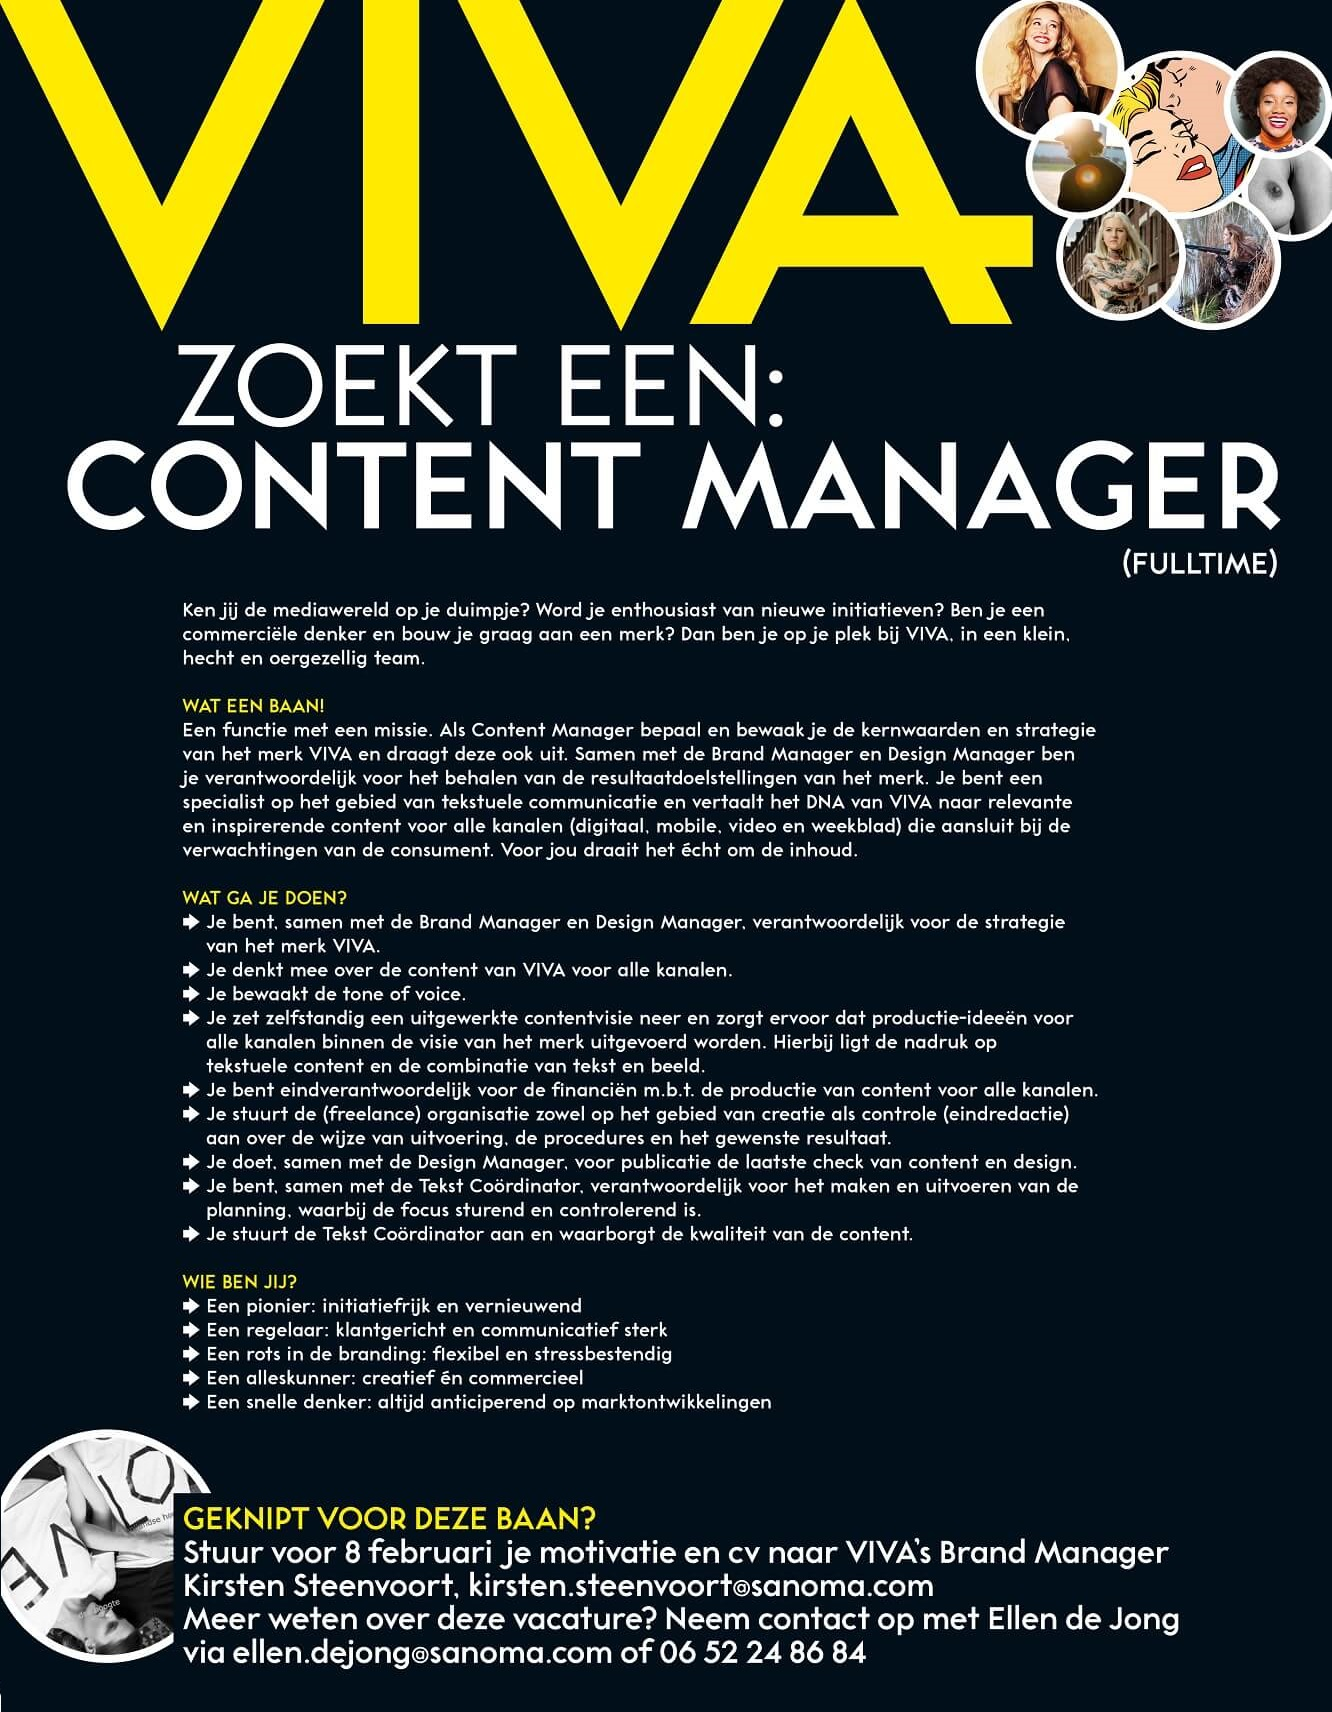 vacature content manager VIVA 2